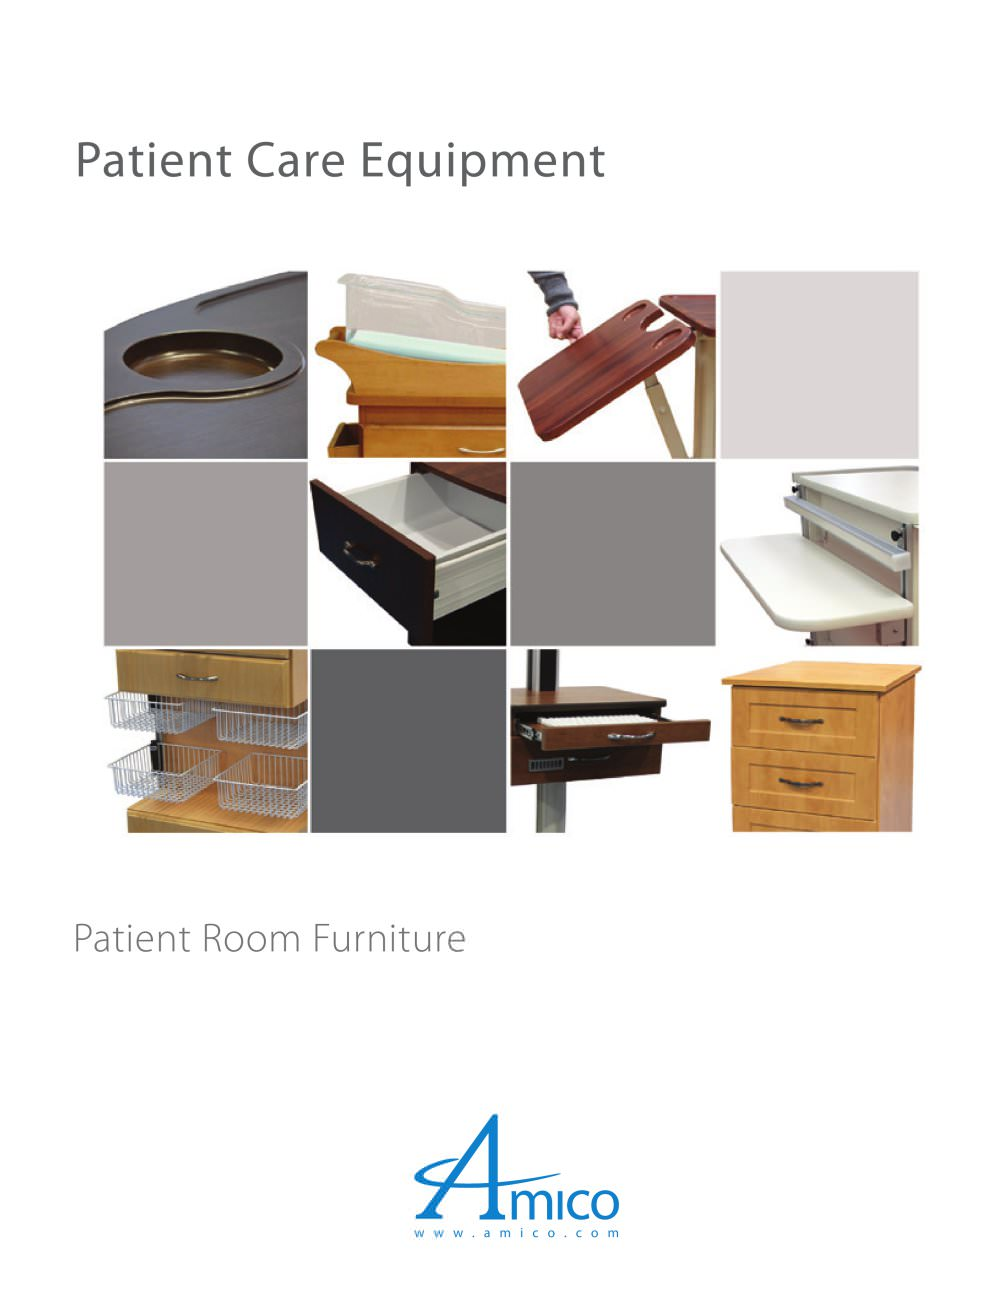 Superieur Patient Room Furniture Brochure   1 / 16 Pages